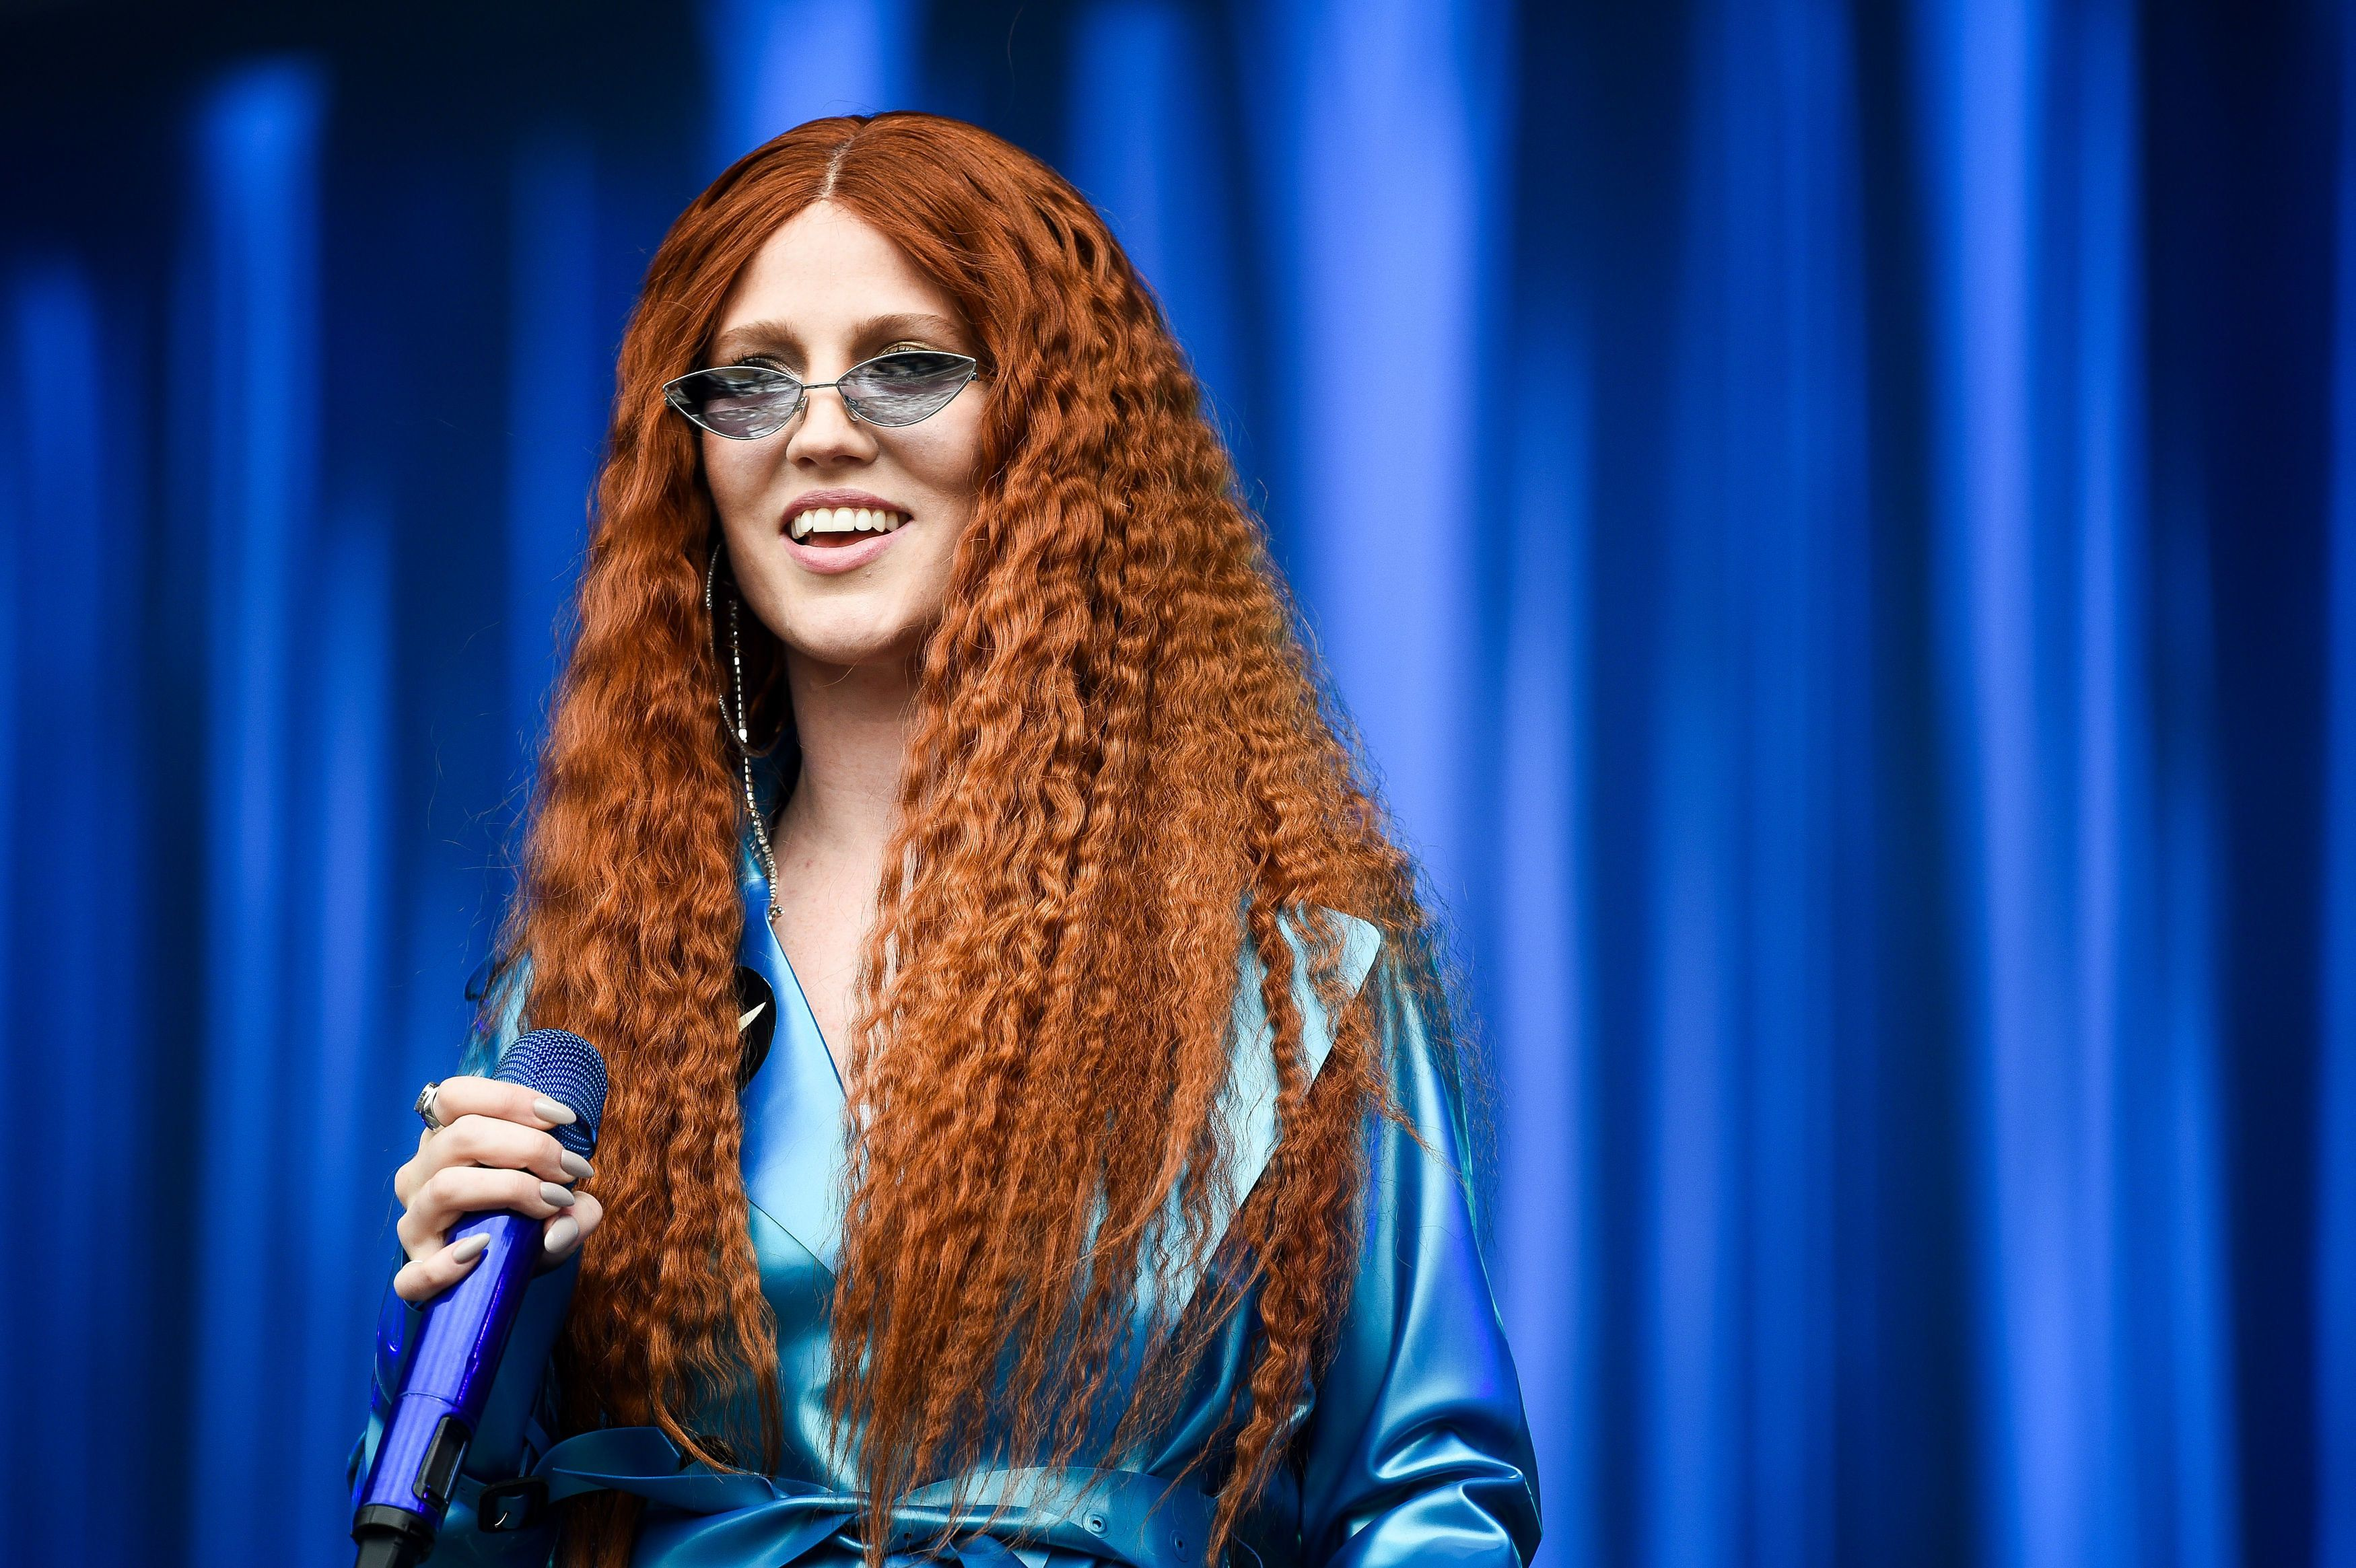 Jess Glynne Jokes She Is Sorry Her Song Has Been Torturing Jet2